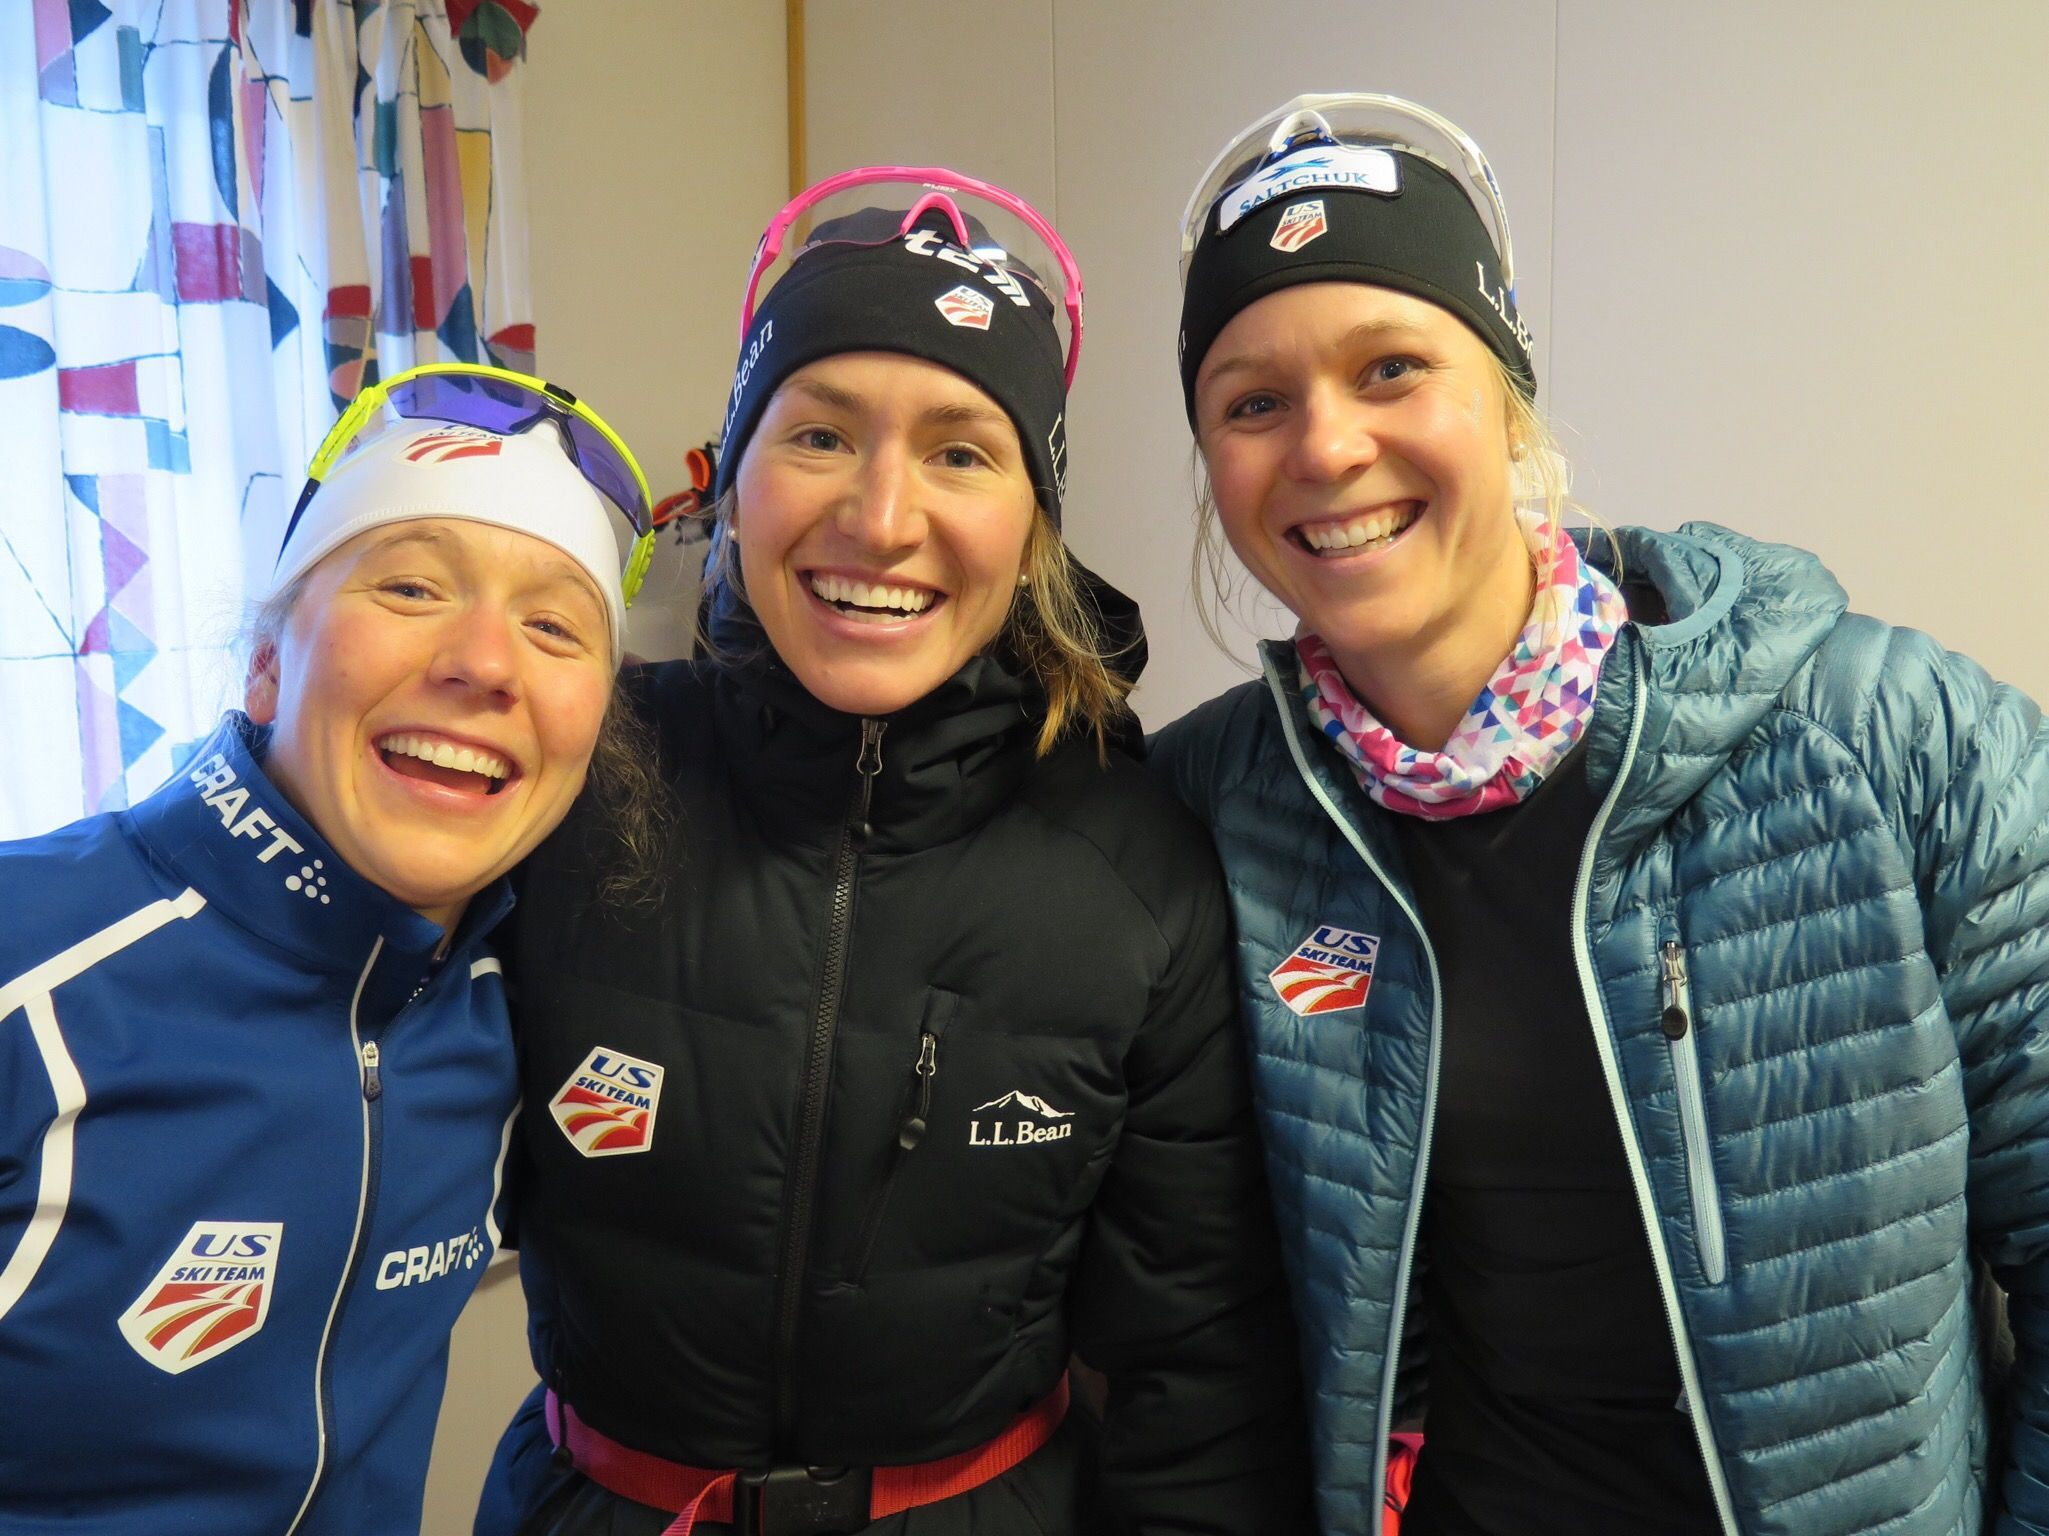 A smiley crew after finishing that race! (Lilly Caldwell photo)